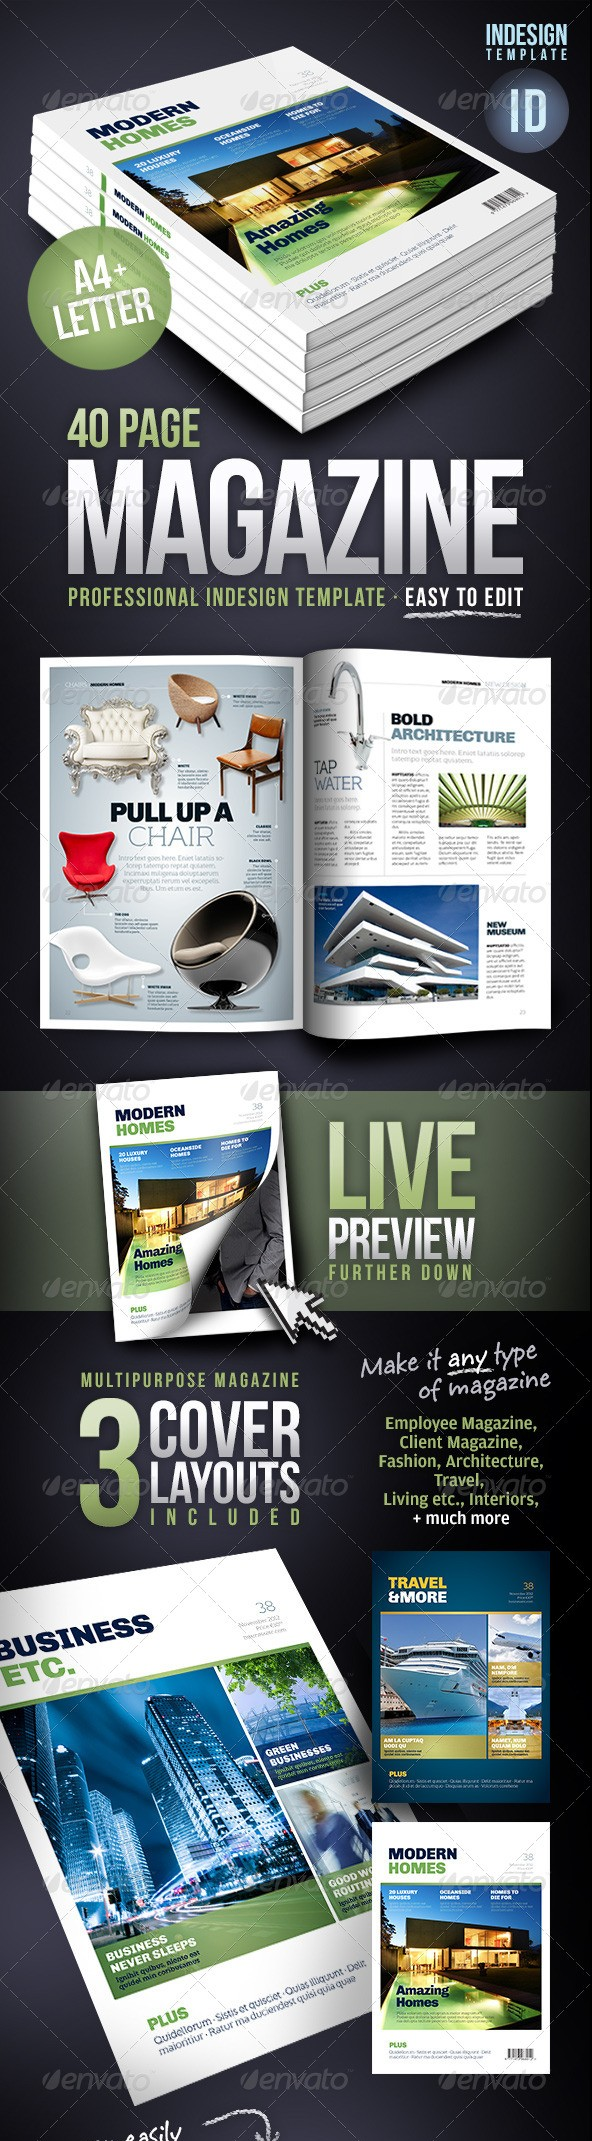 Indesign Template Torrent. indesign pro magazine template kalonice ...